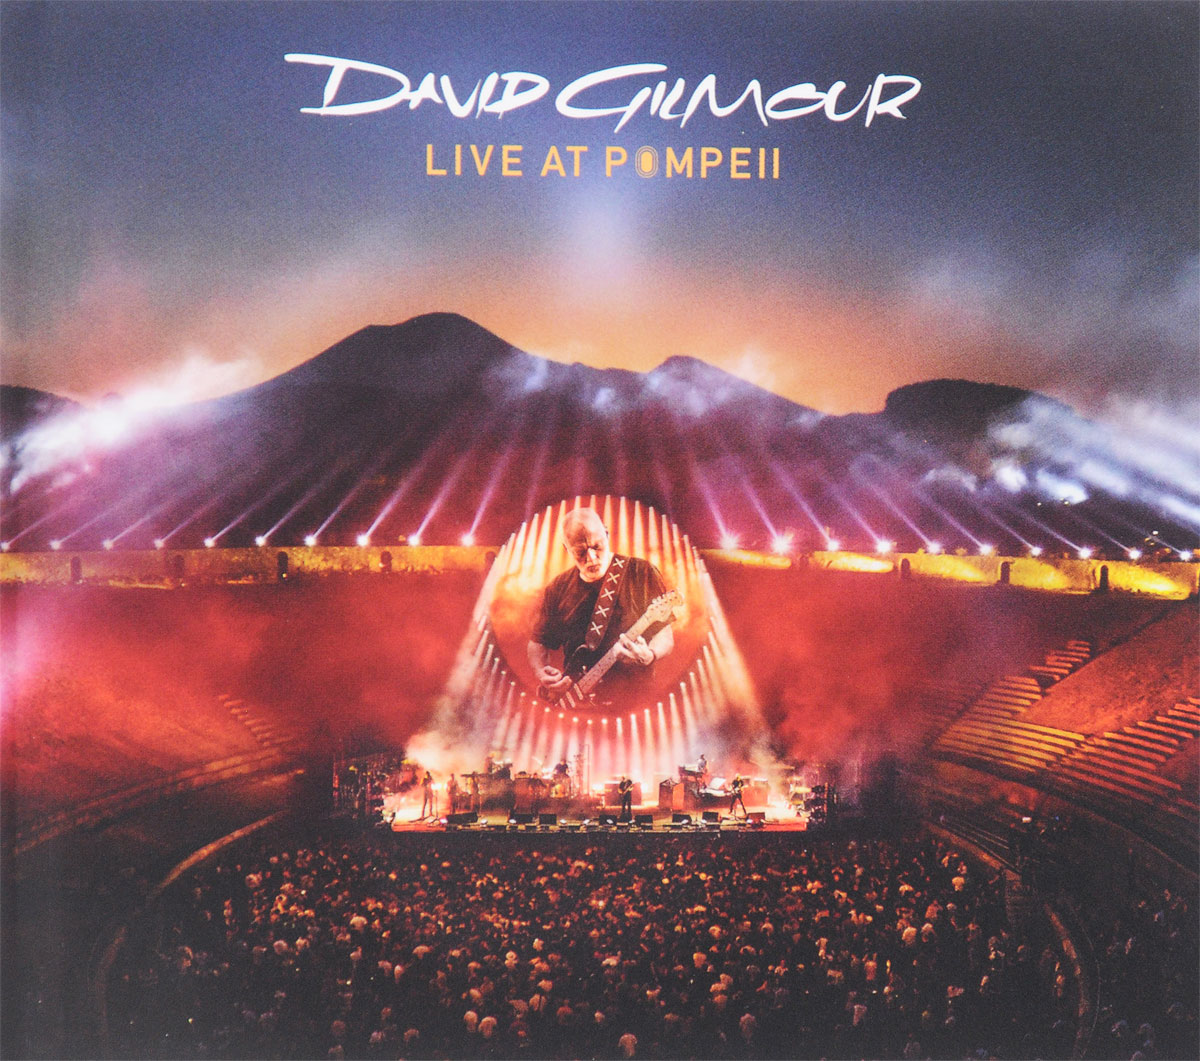 Дэвид Гилмор David Gilmour. Live At Pompeii (2 CD) david gilmour – live at pompeii blu ray